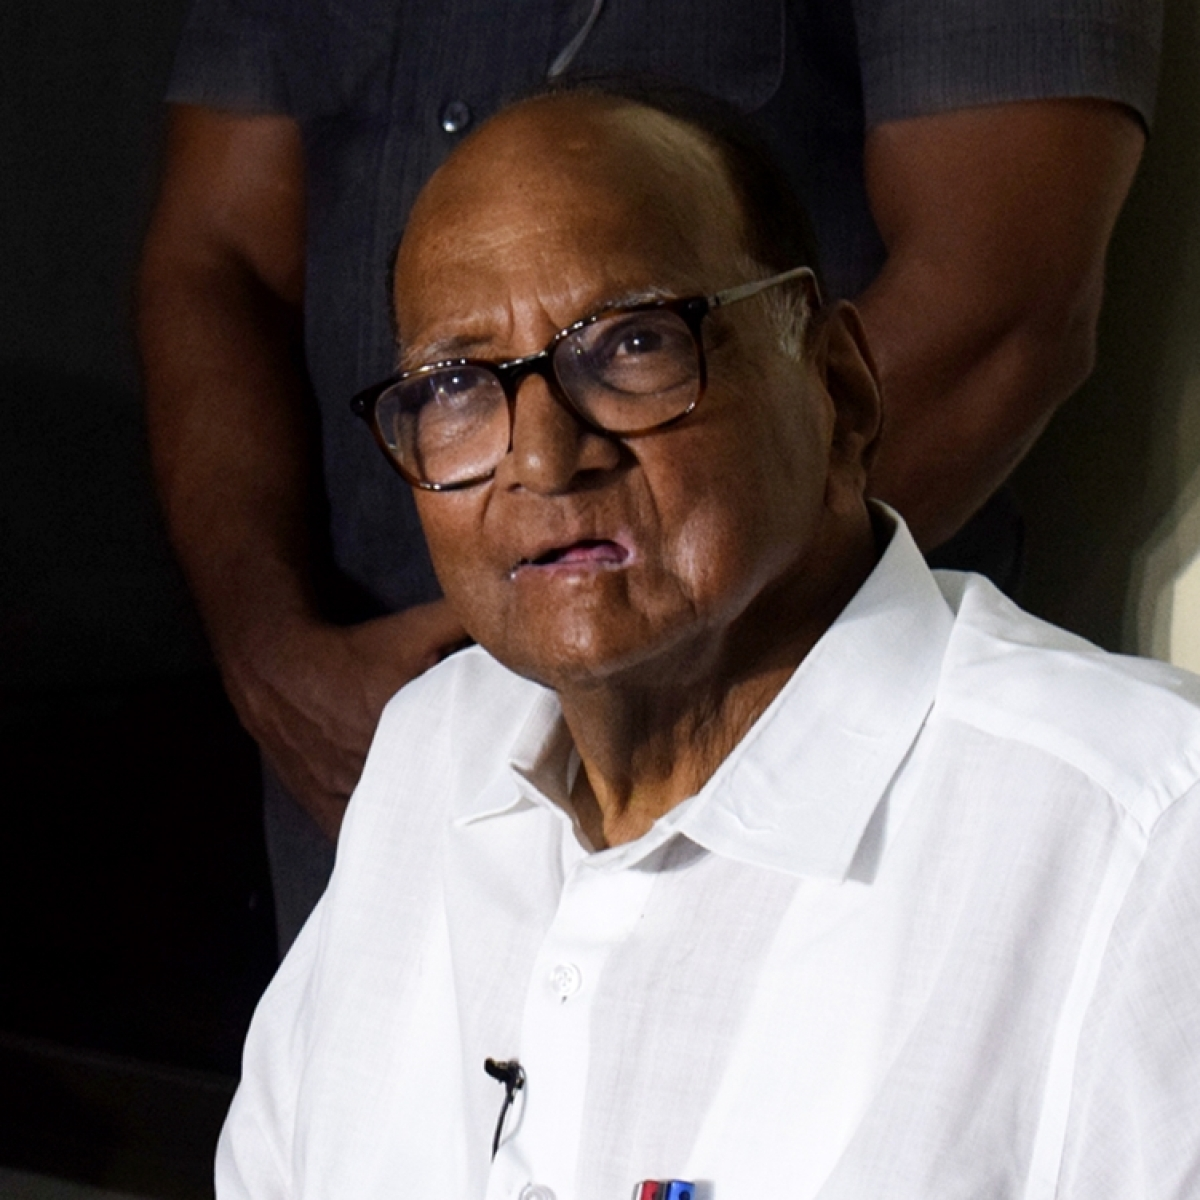 Bhima Koregaon case: Sharad Pawar wants SIT to probe into violence